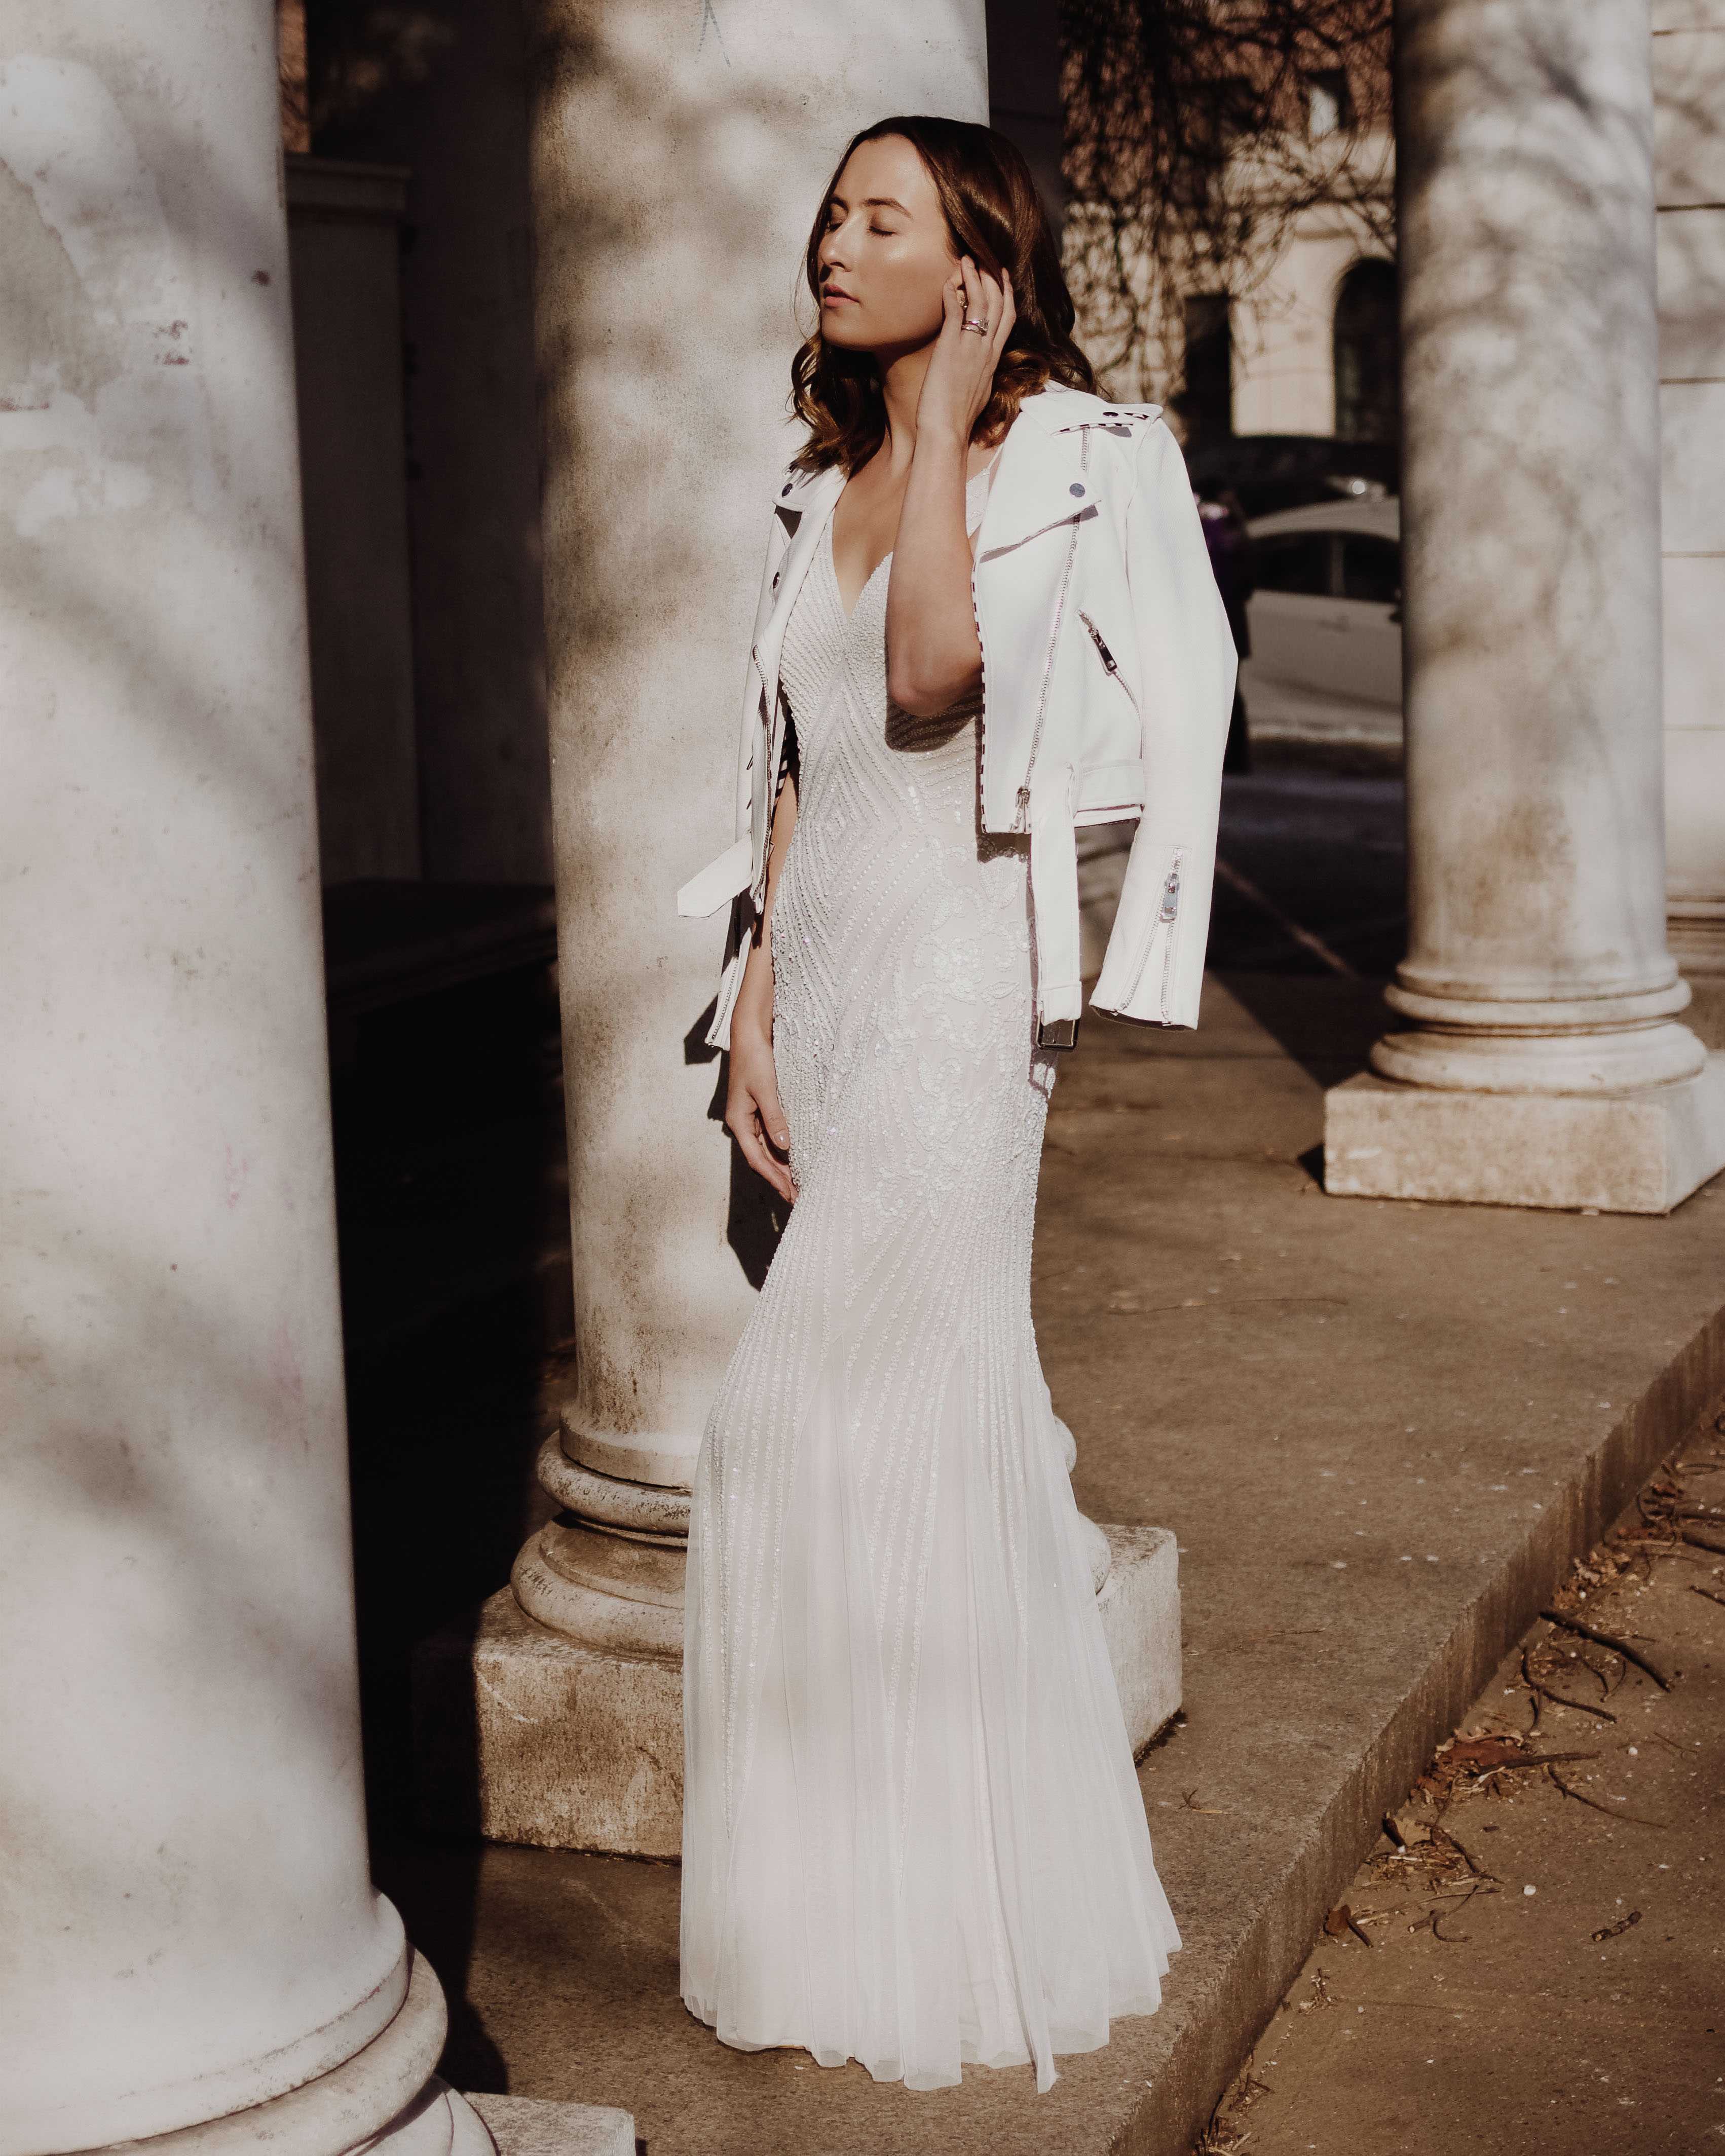 Woman standing near white pillars in a long white beaded dress with white leather jacket draped over her shoulders